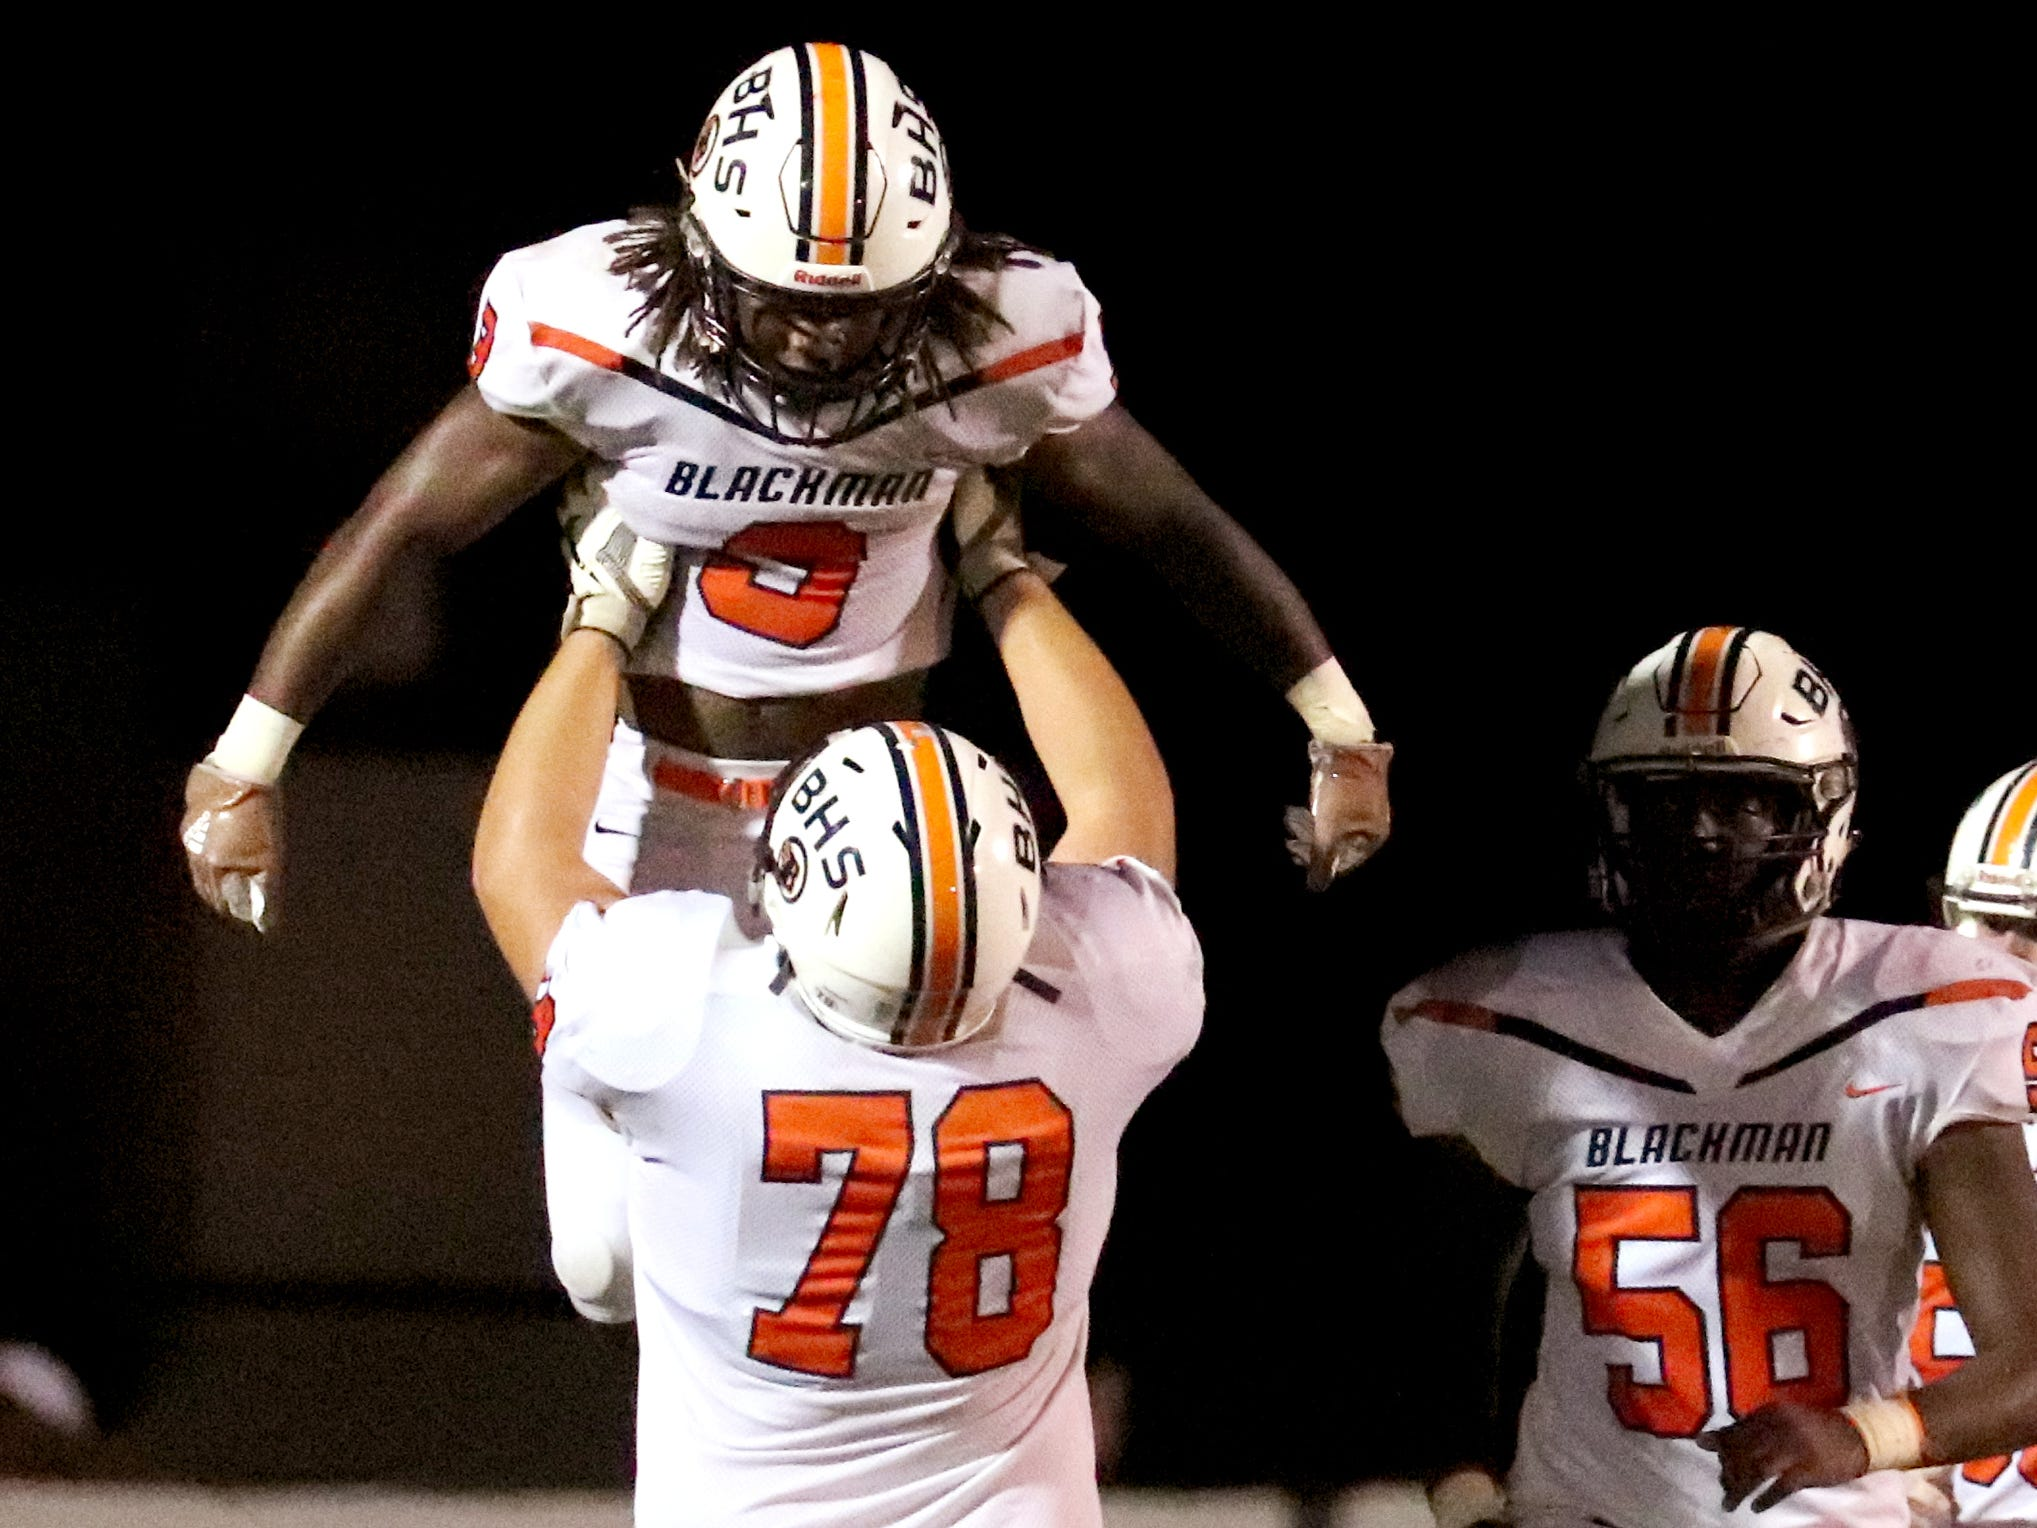 Blackman's Michael Arnal-Brown (78) lifts Tamicus Napier up in the air to celebrate Napier's touchdown against Smyrna during the game at Smyrna High School on Friday, Sept. 7, 2018.